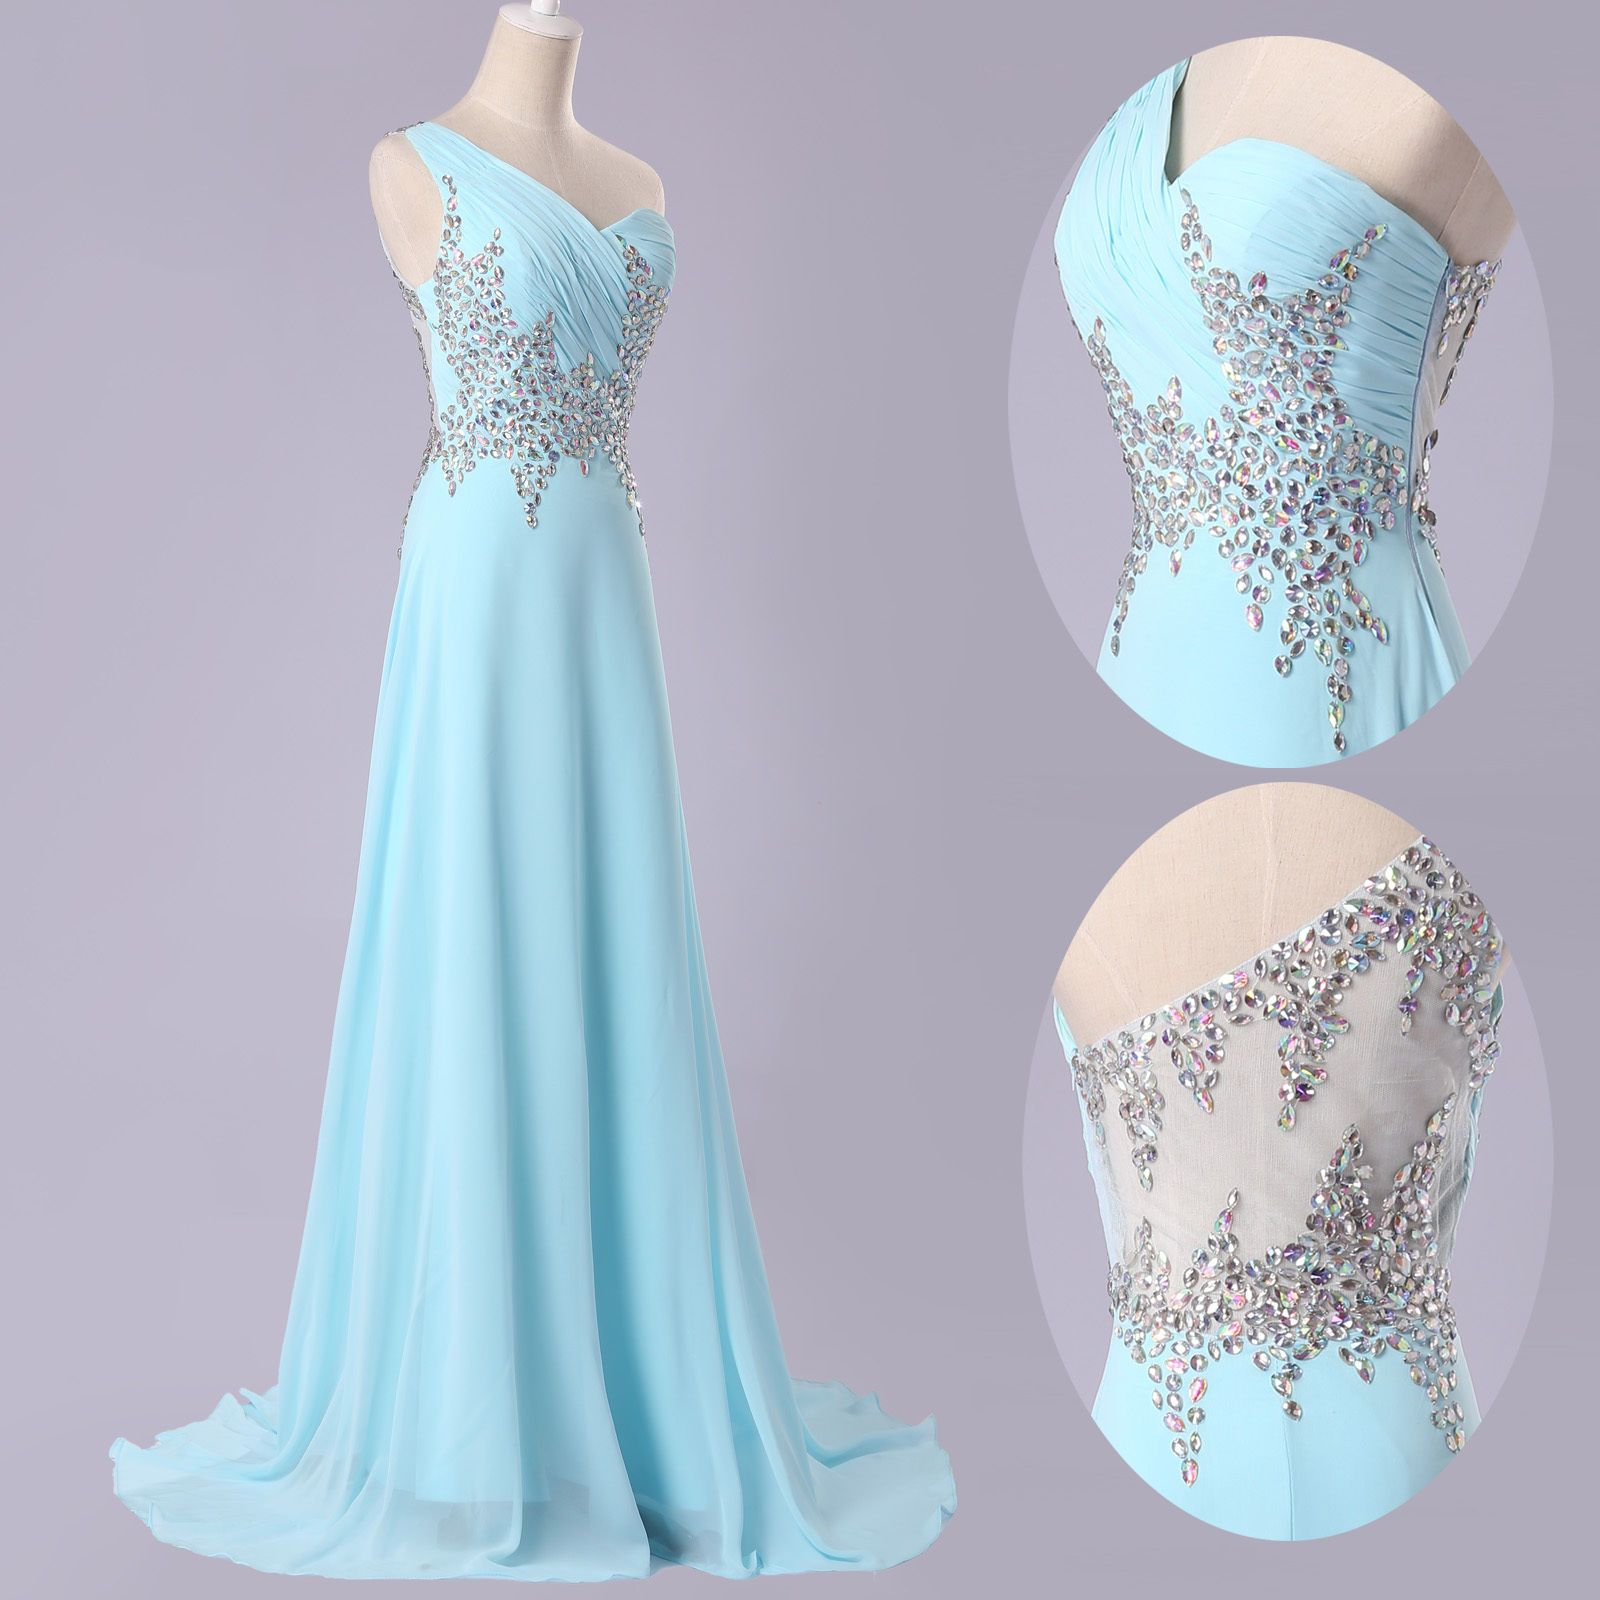 2015 Women Formal Bridal Bridesmaid Gown Evening Prom Long Party ...